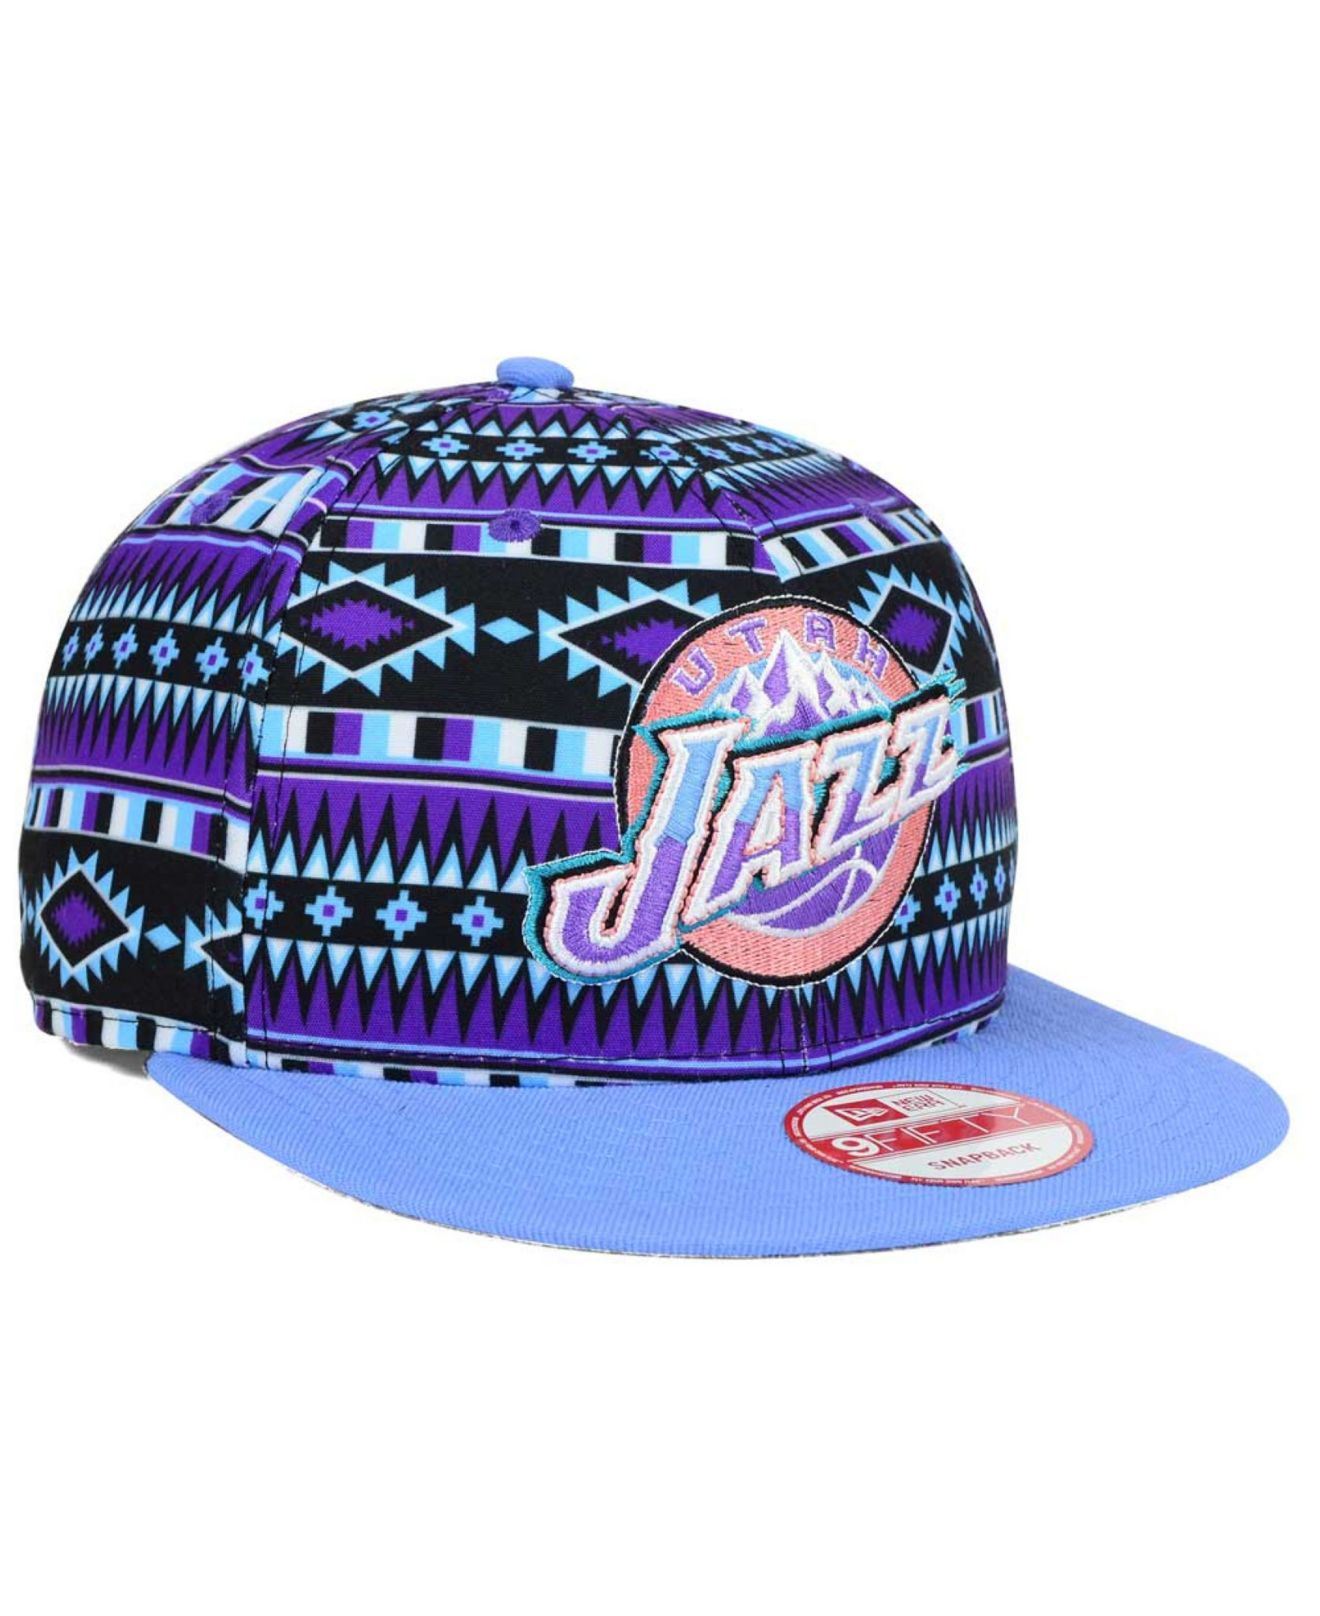 brand new 5445e 8f68d ... where can i buy lyst ktz utah jazz hwc tri all print 9fifty snapback  cap in